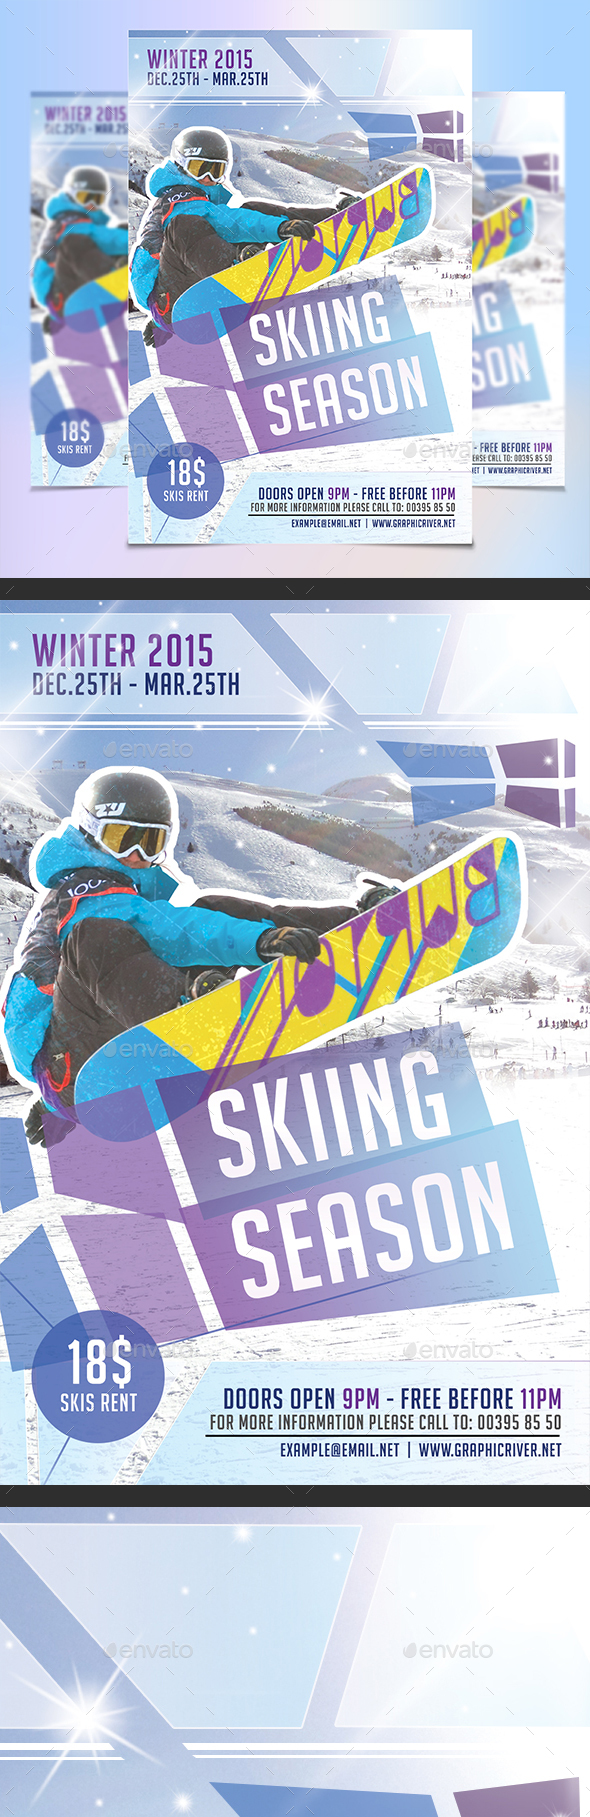 Skiing Season Flyer Template - Sports Events